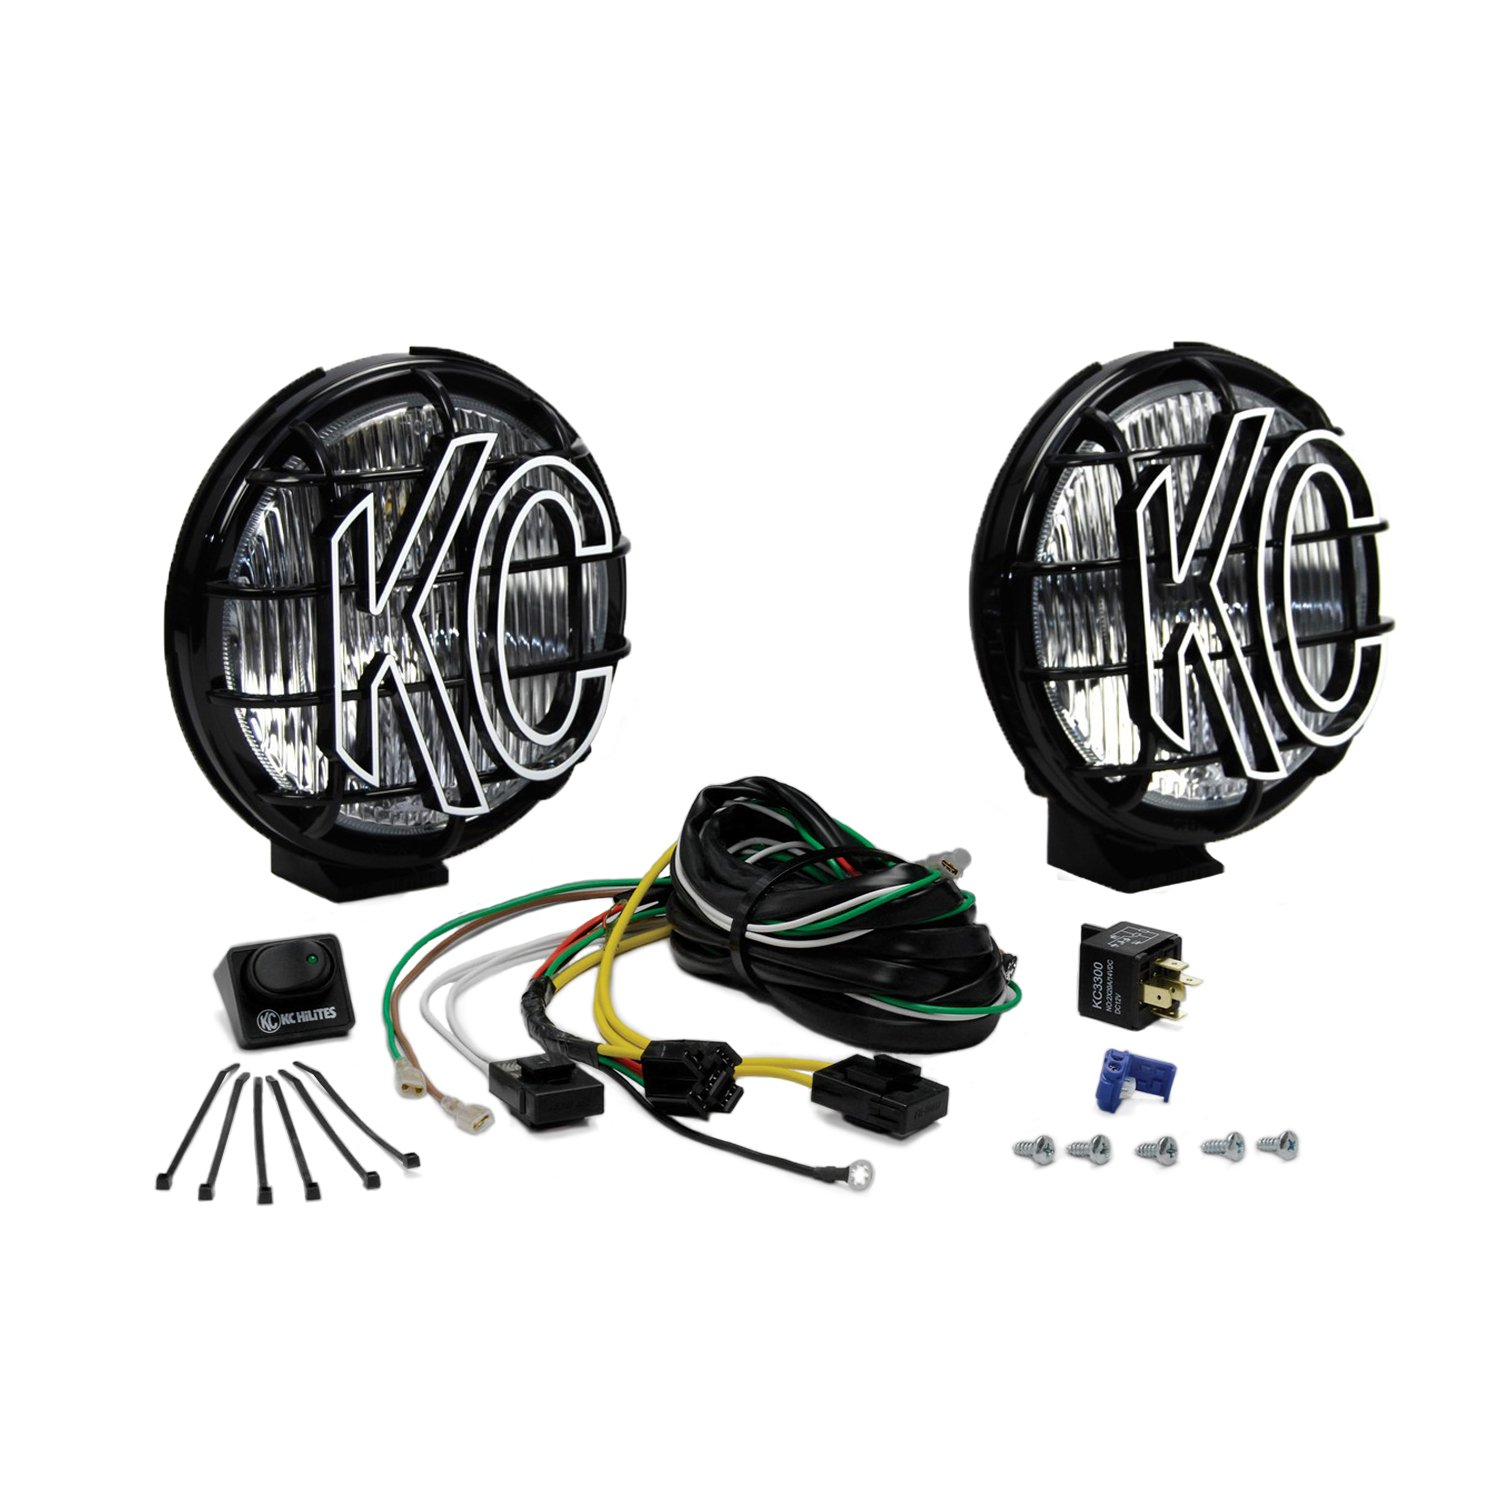 KC HiLiTES 152 Apollo Pro 6'' 100w Fog Light System by KC HiLiTES